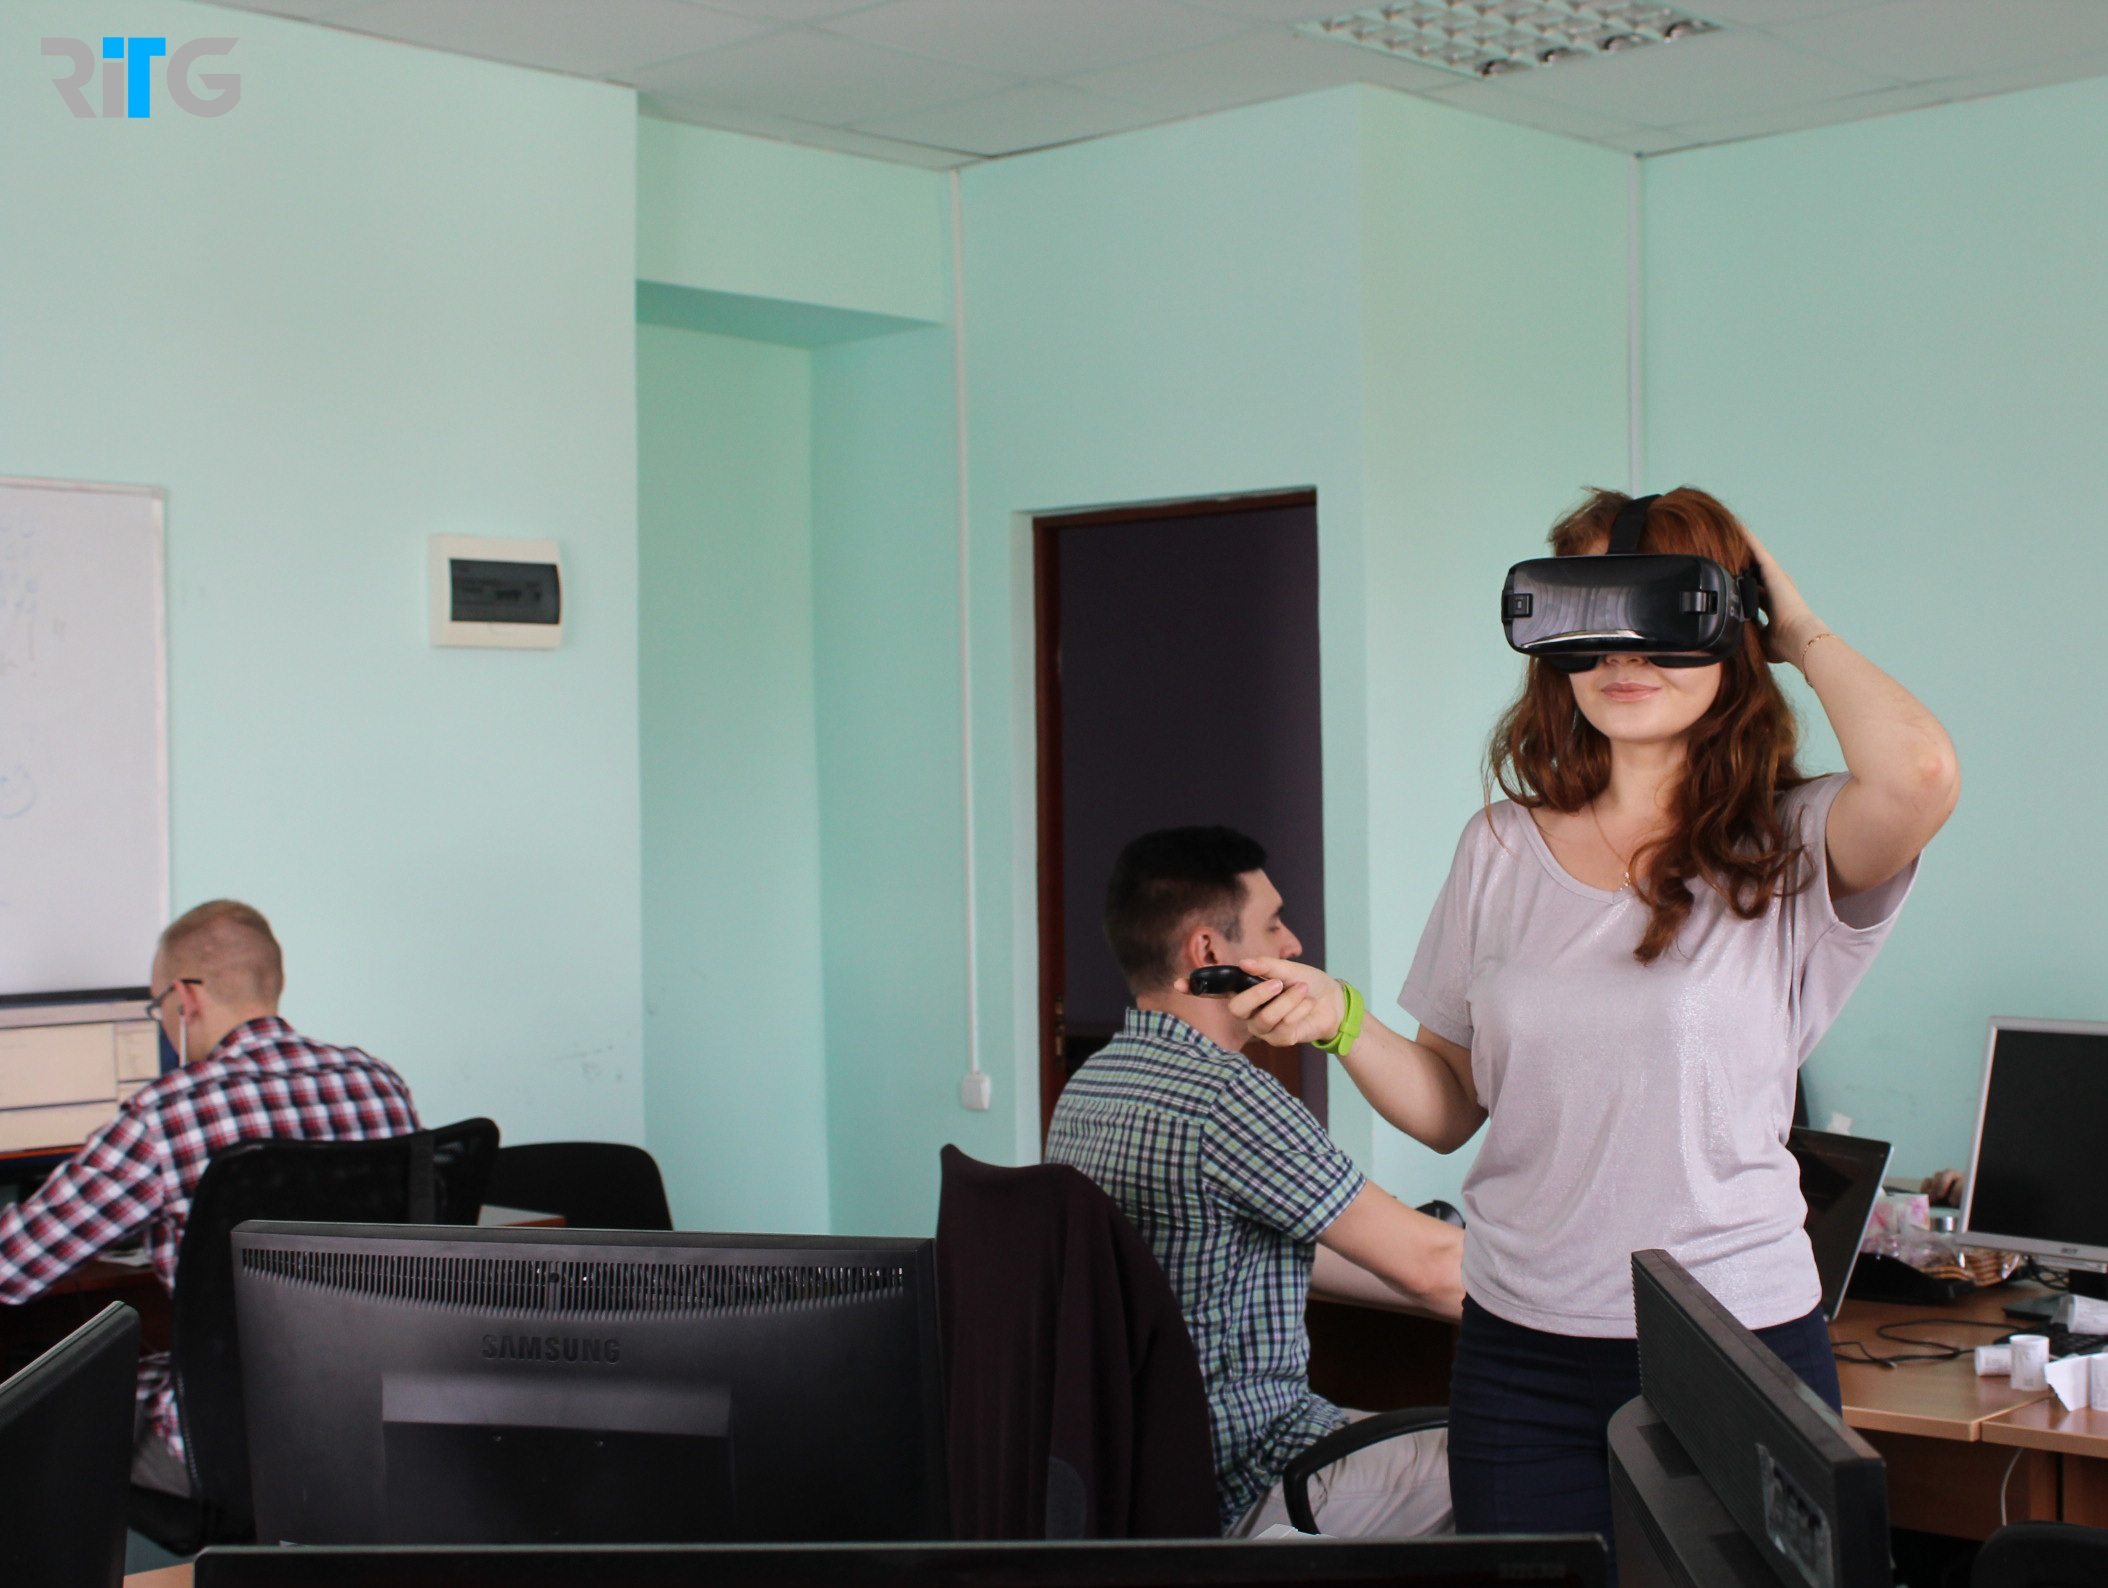 Development of VR-application for business